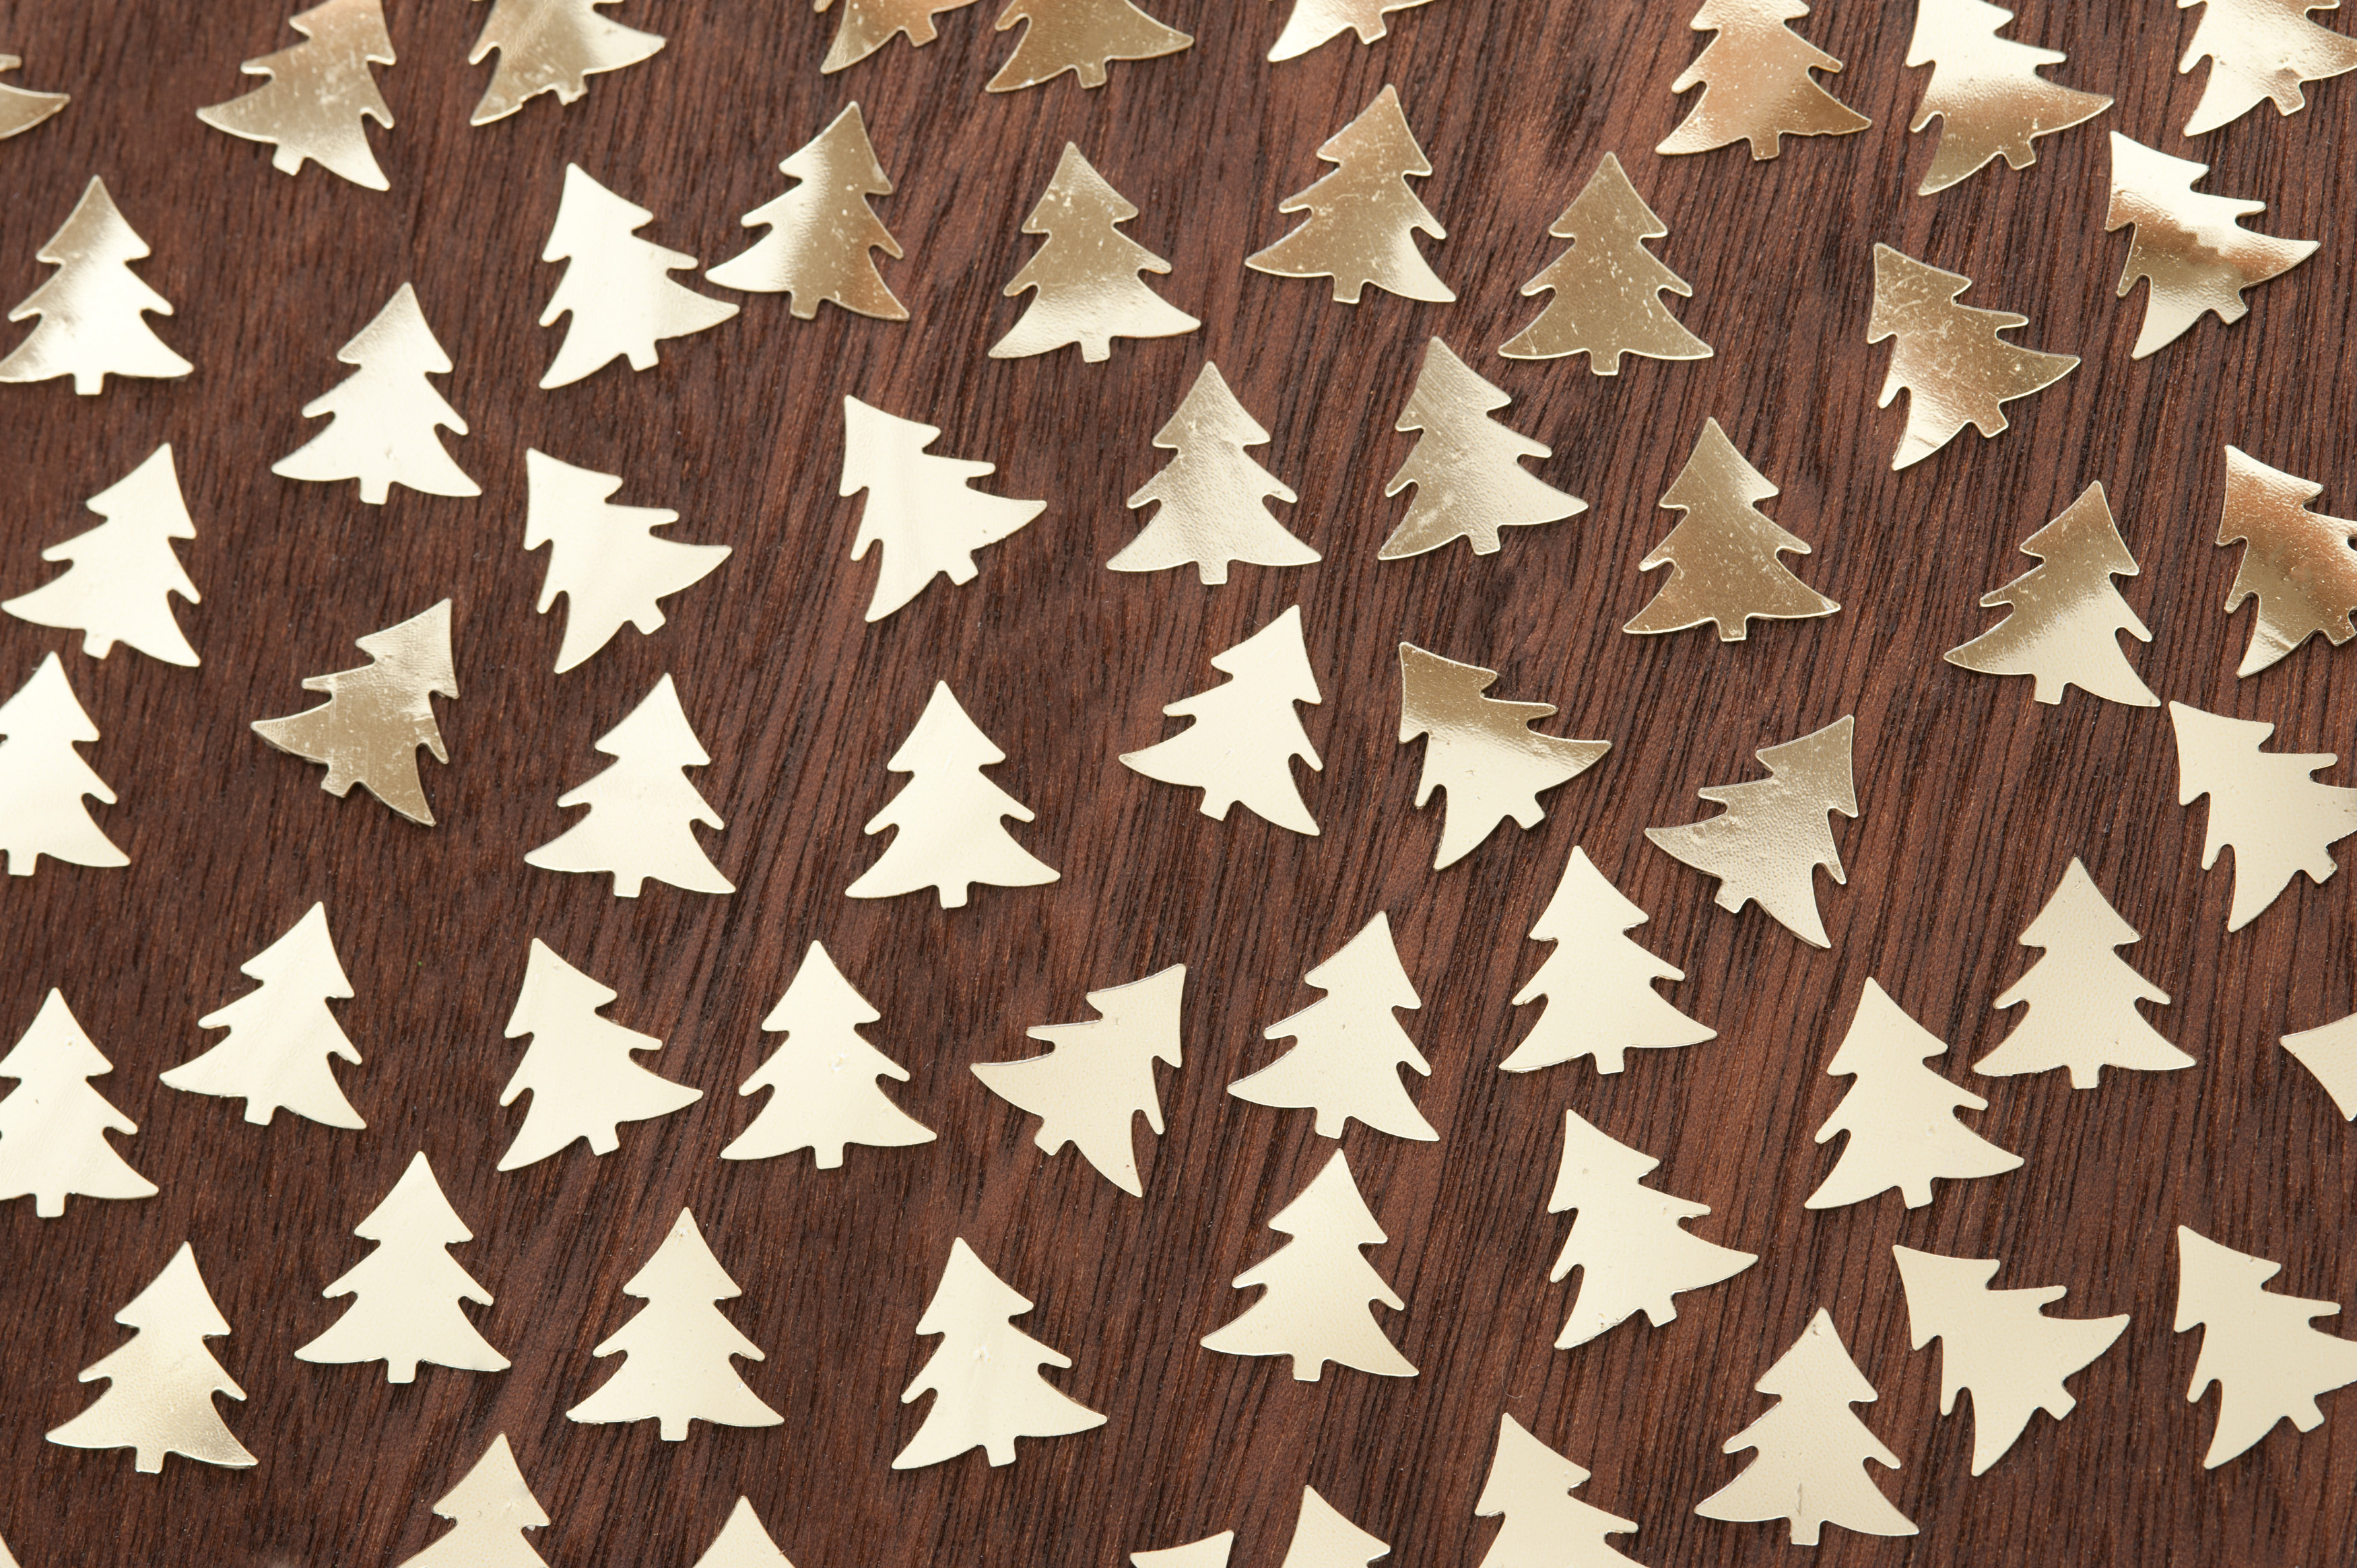 Gold Christmas Tree Background Pattern 9366 Stockarch Free Stock